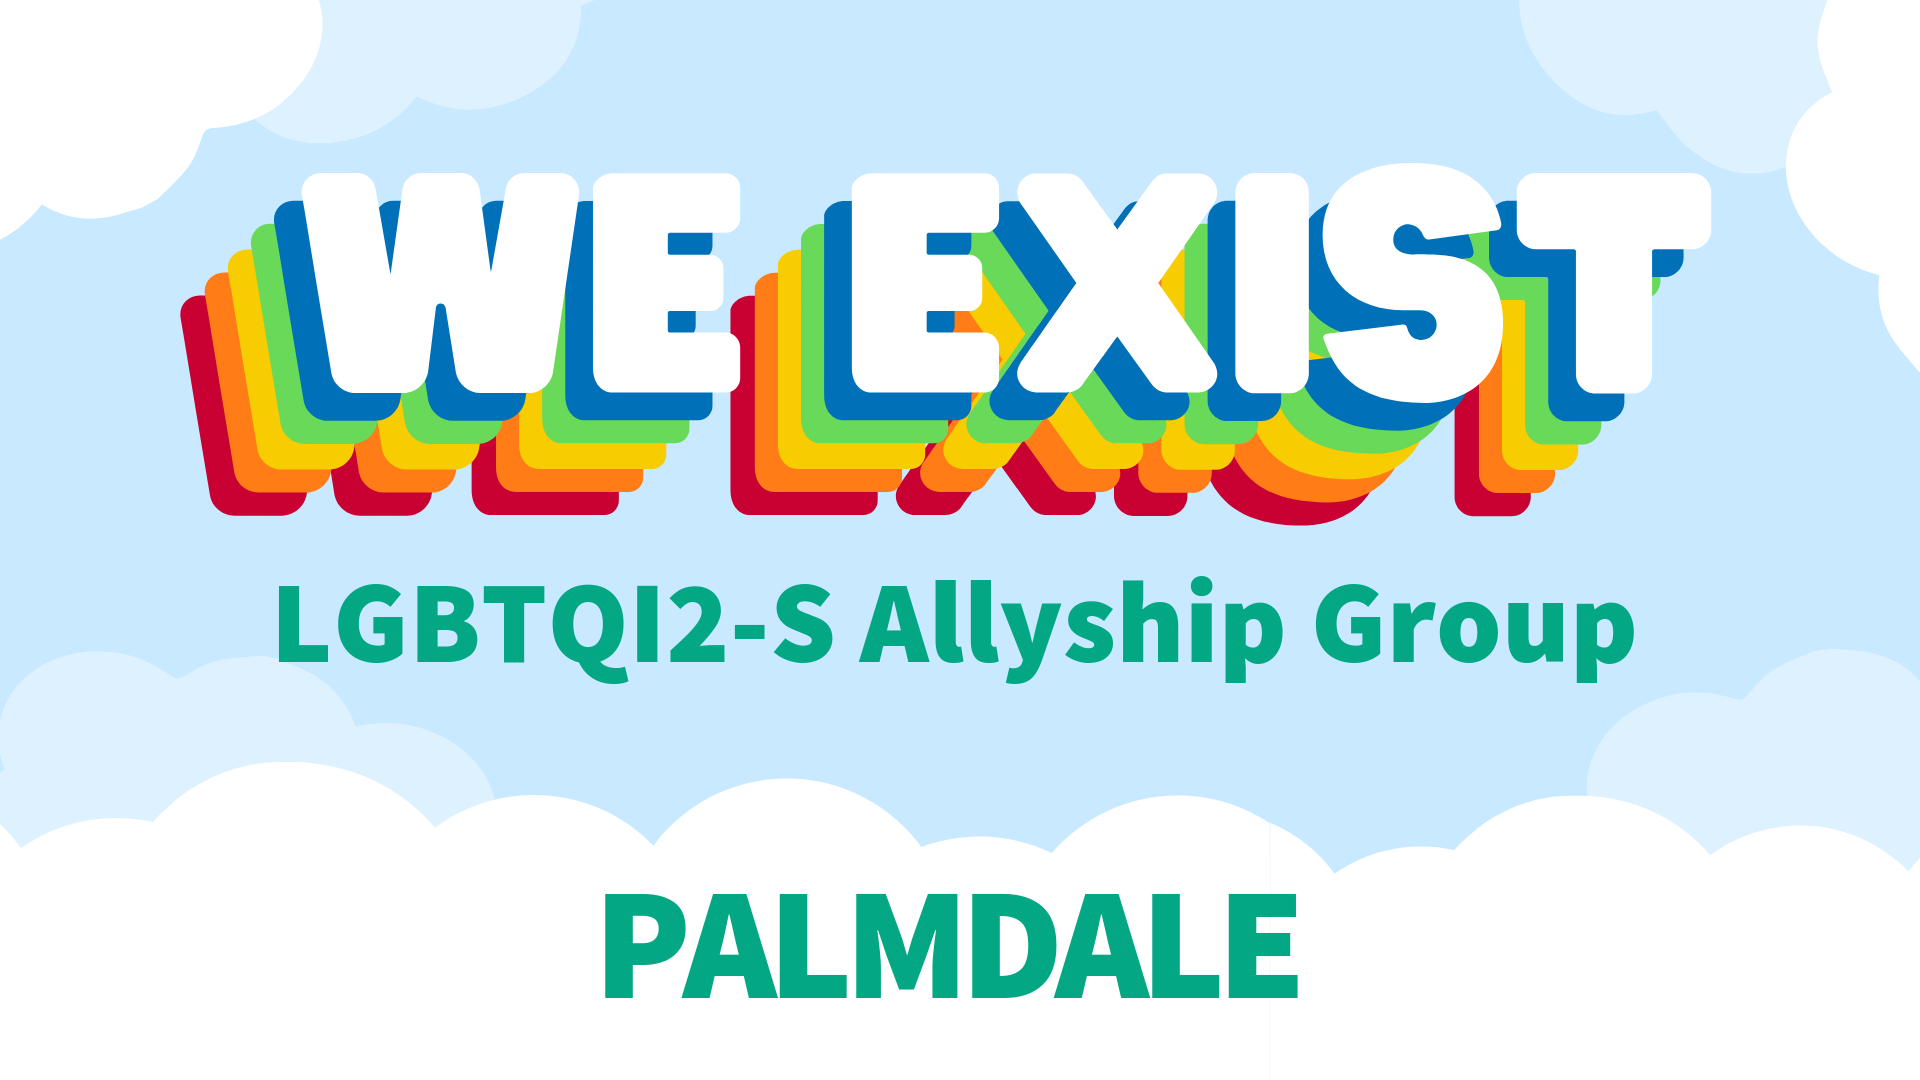 We Exist LGBTQ Allyship Group (AV)